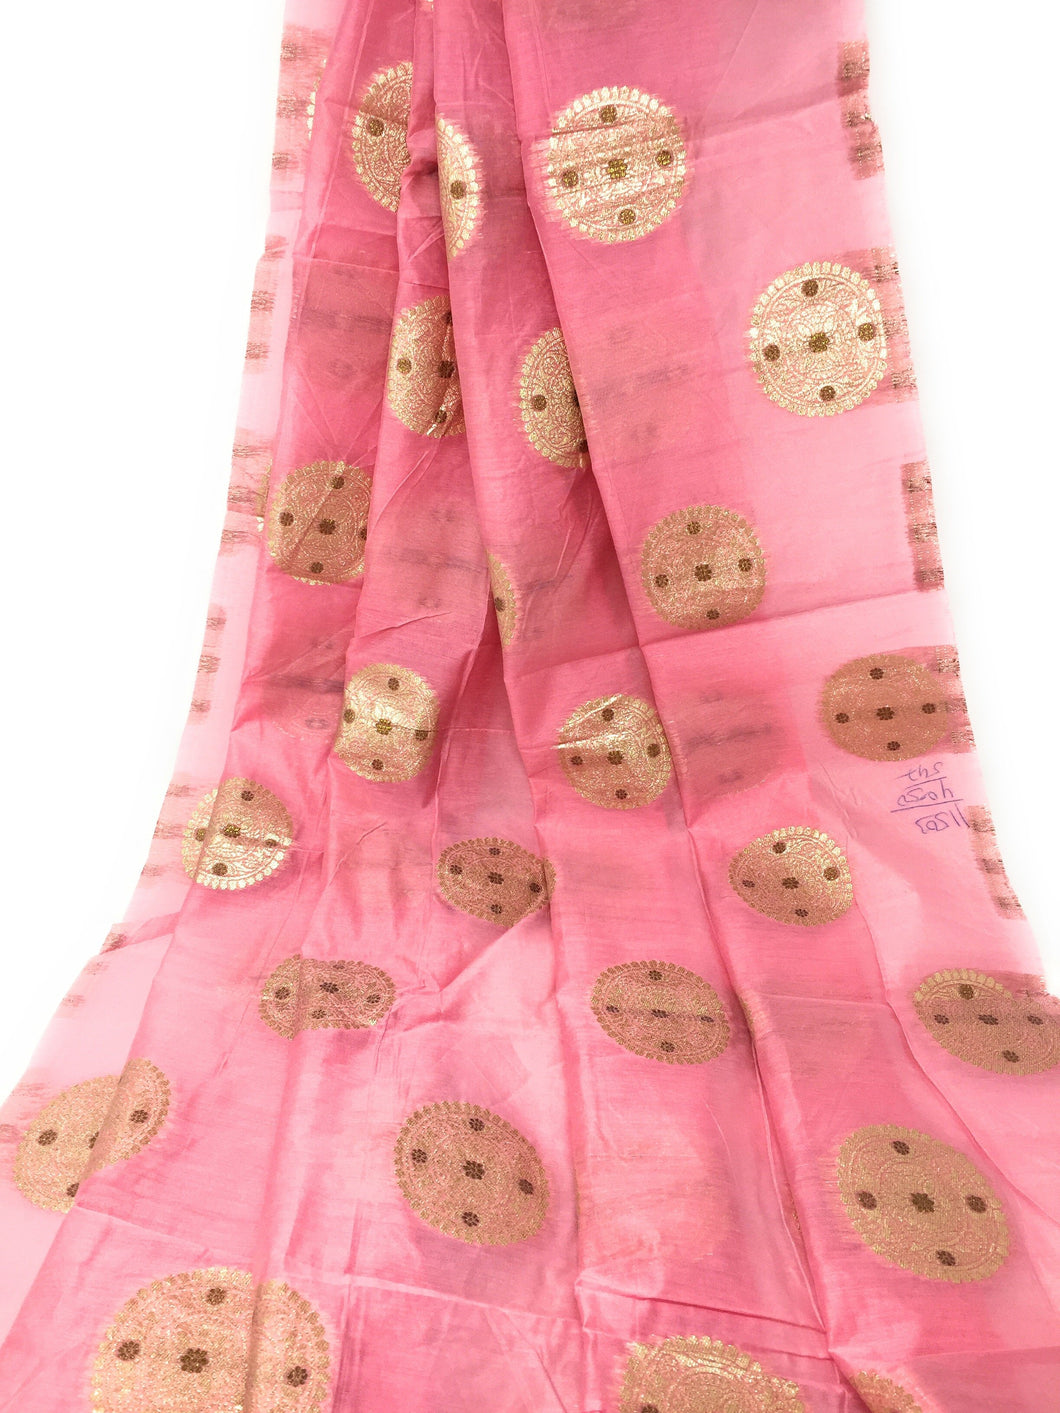 Baby Pink Brocade Jacquard Fabric In Gold N Bronze